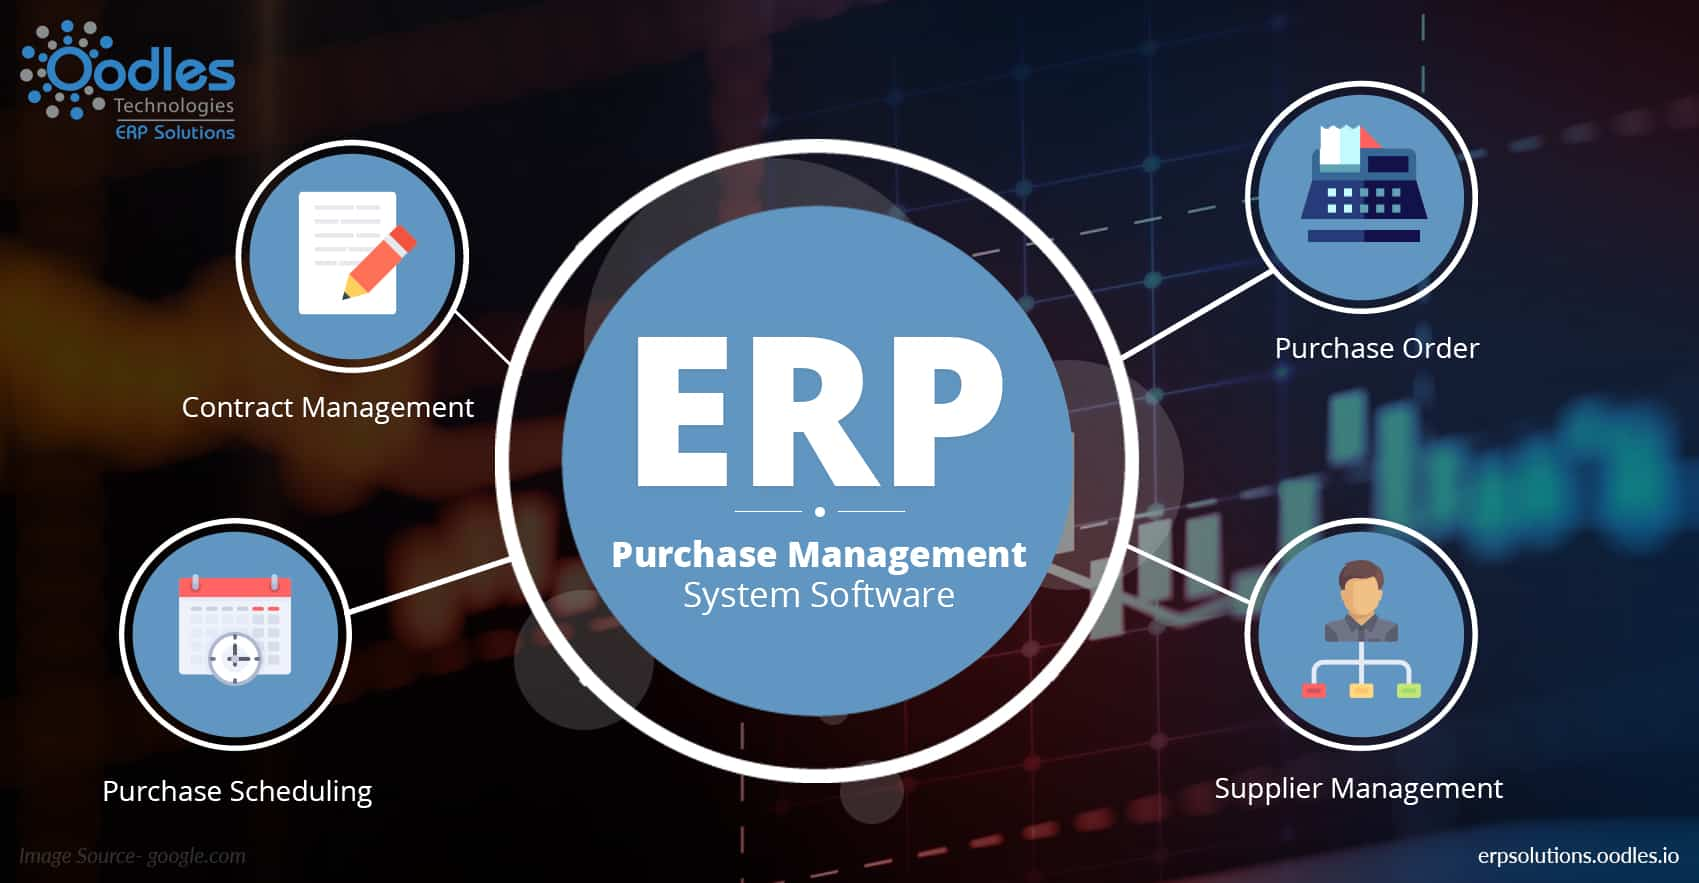 ERP purchase management system software: Life Line of an Industry